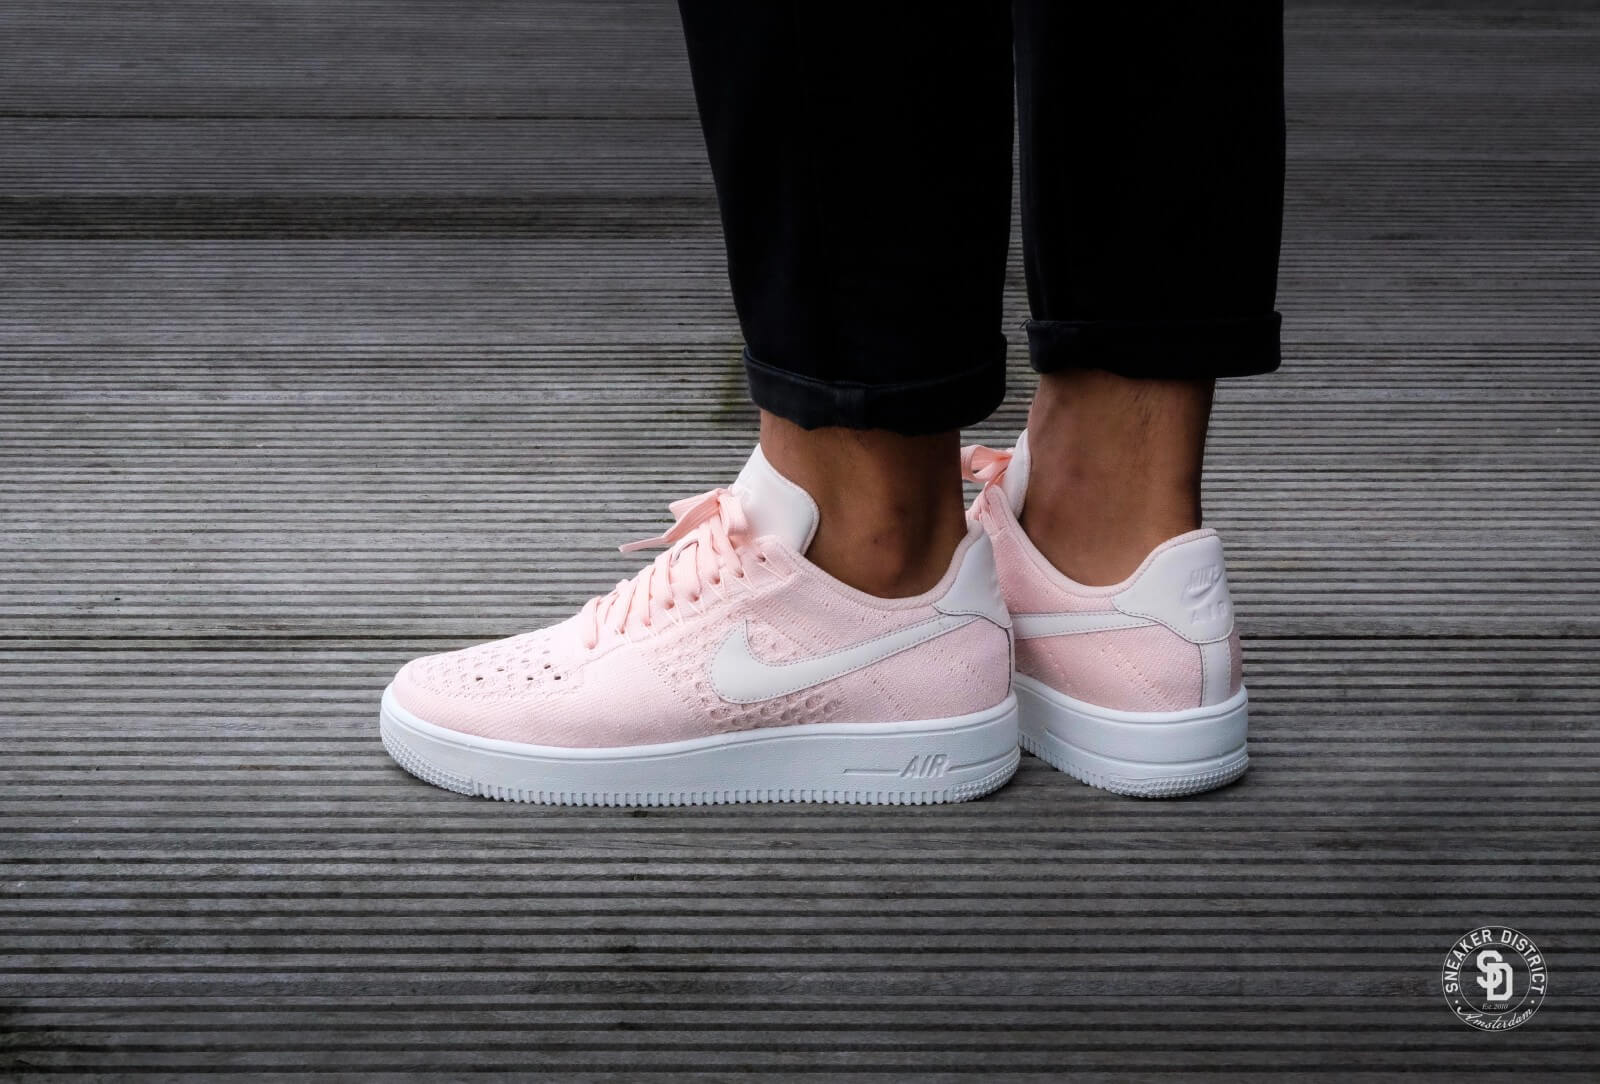 Nike Air Force 1 Ultra flyknit Low Sunset Tint Sail 817419 601